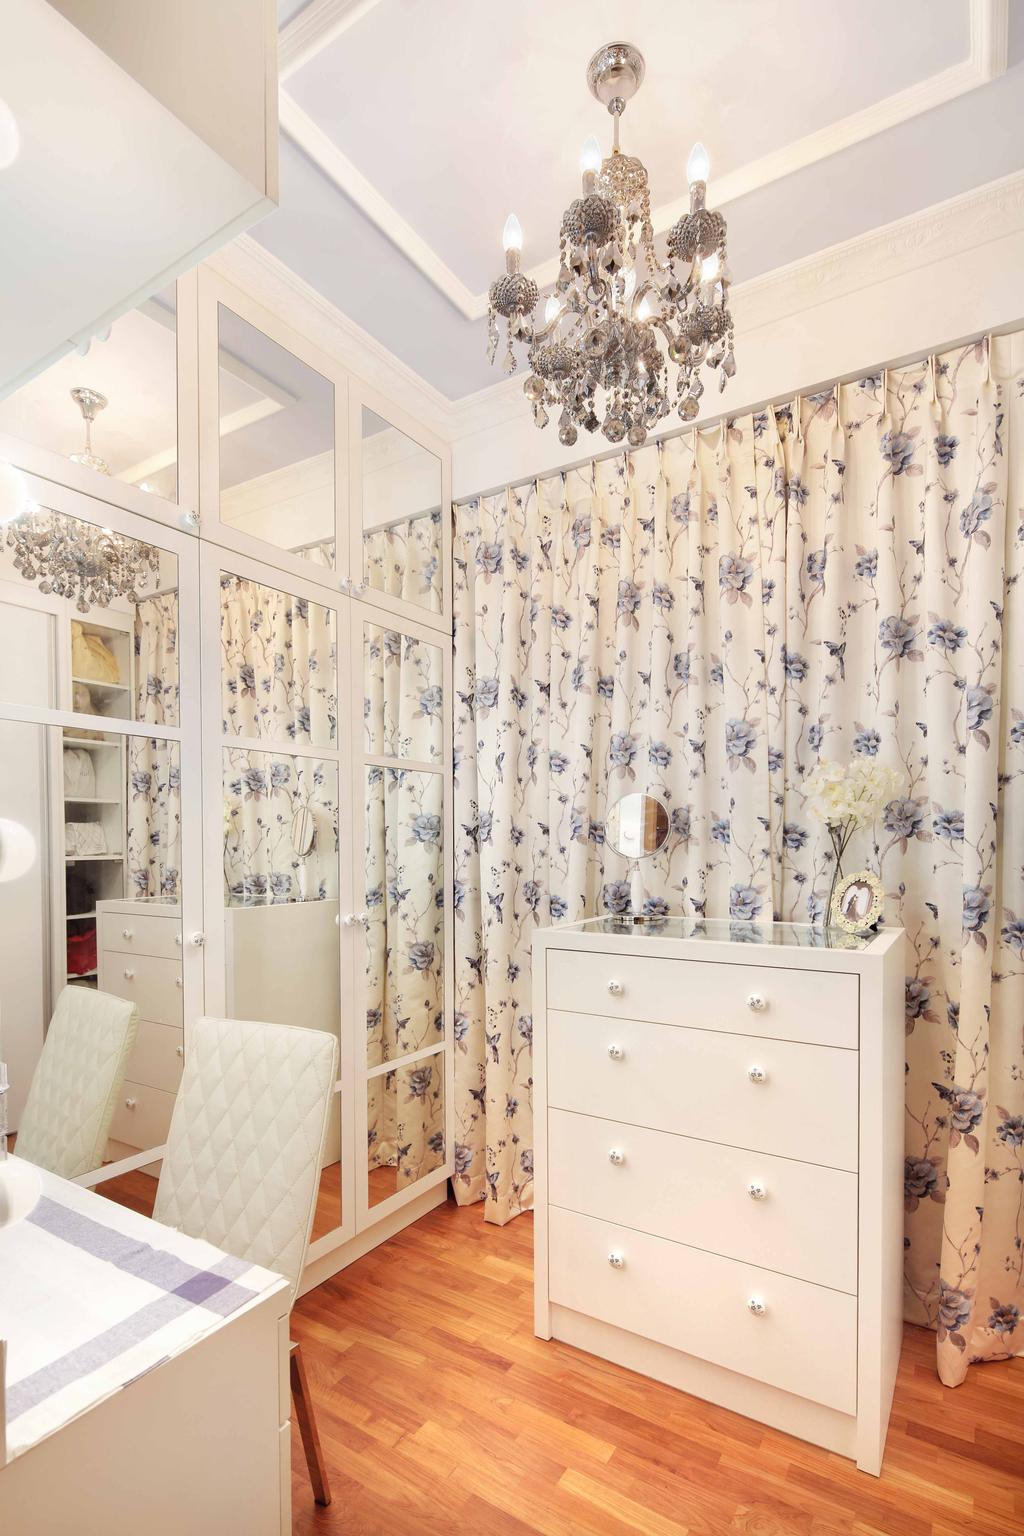 Transitional, Condo, Bedroom, Shore Residence - Amber Road, Interior Designer, Space Define Interior, Chandelier, White, Drawer, Glass Wardrobe Door, Chest Of Drawers, Wooden Flooring, Parquet, Curtain, Floral Curtains, Full Length Mirror